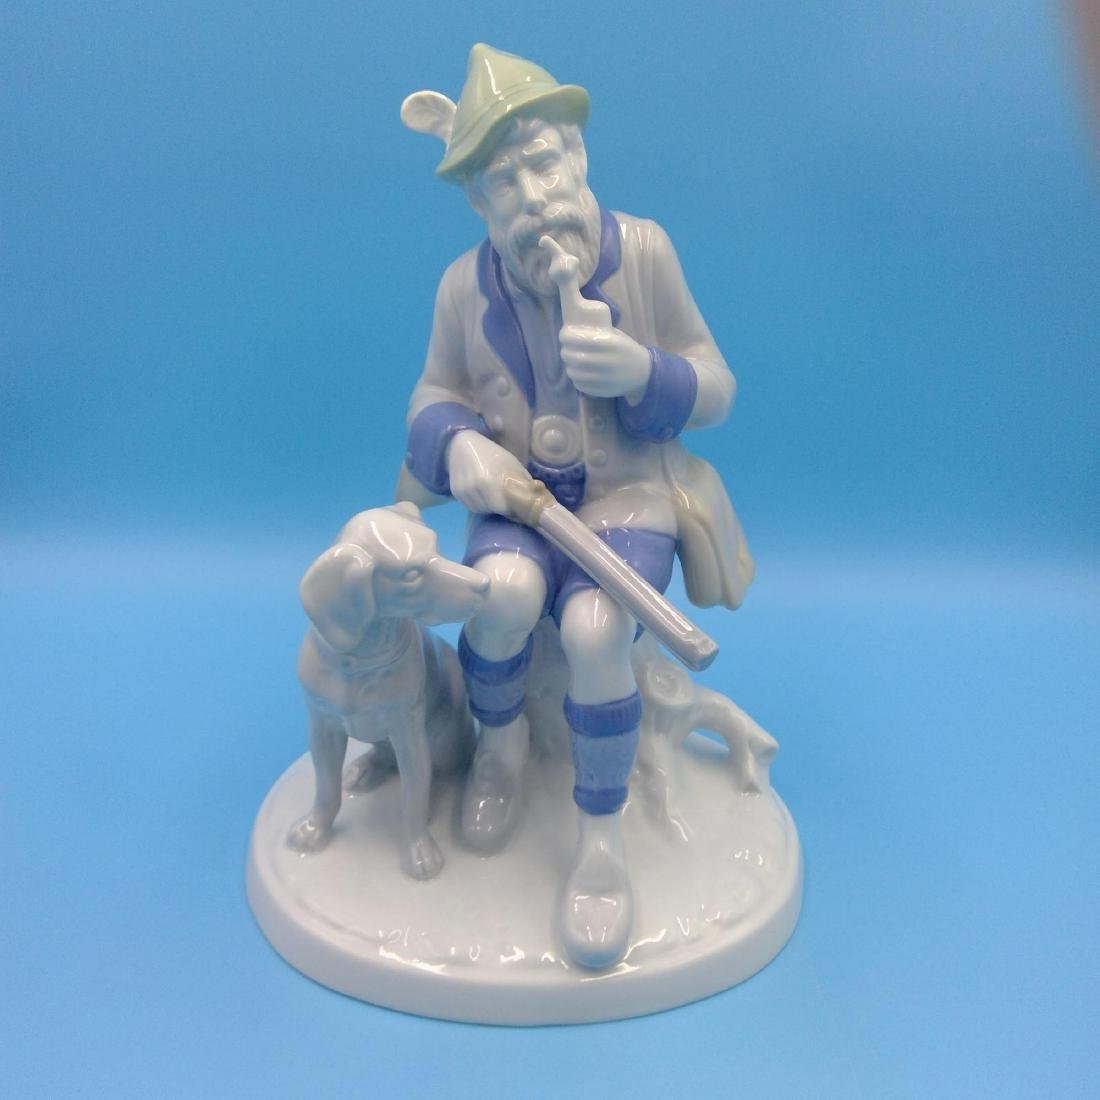 GROUP OF 4 LARGE GERMAN PORCELAIN FIGURINES - 2